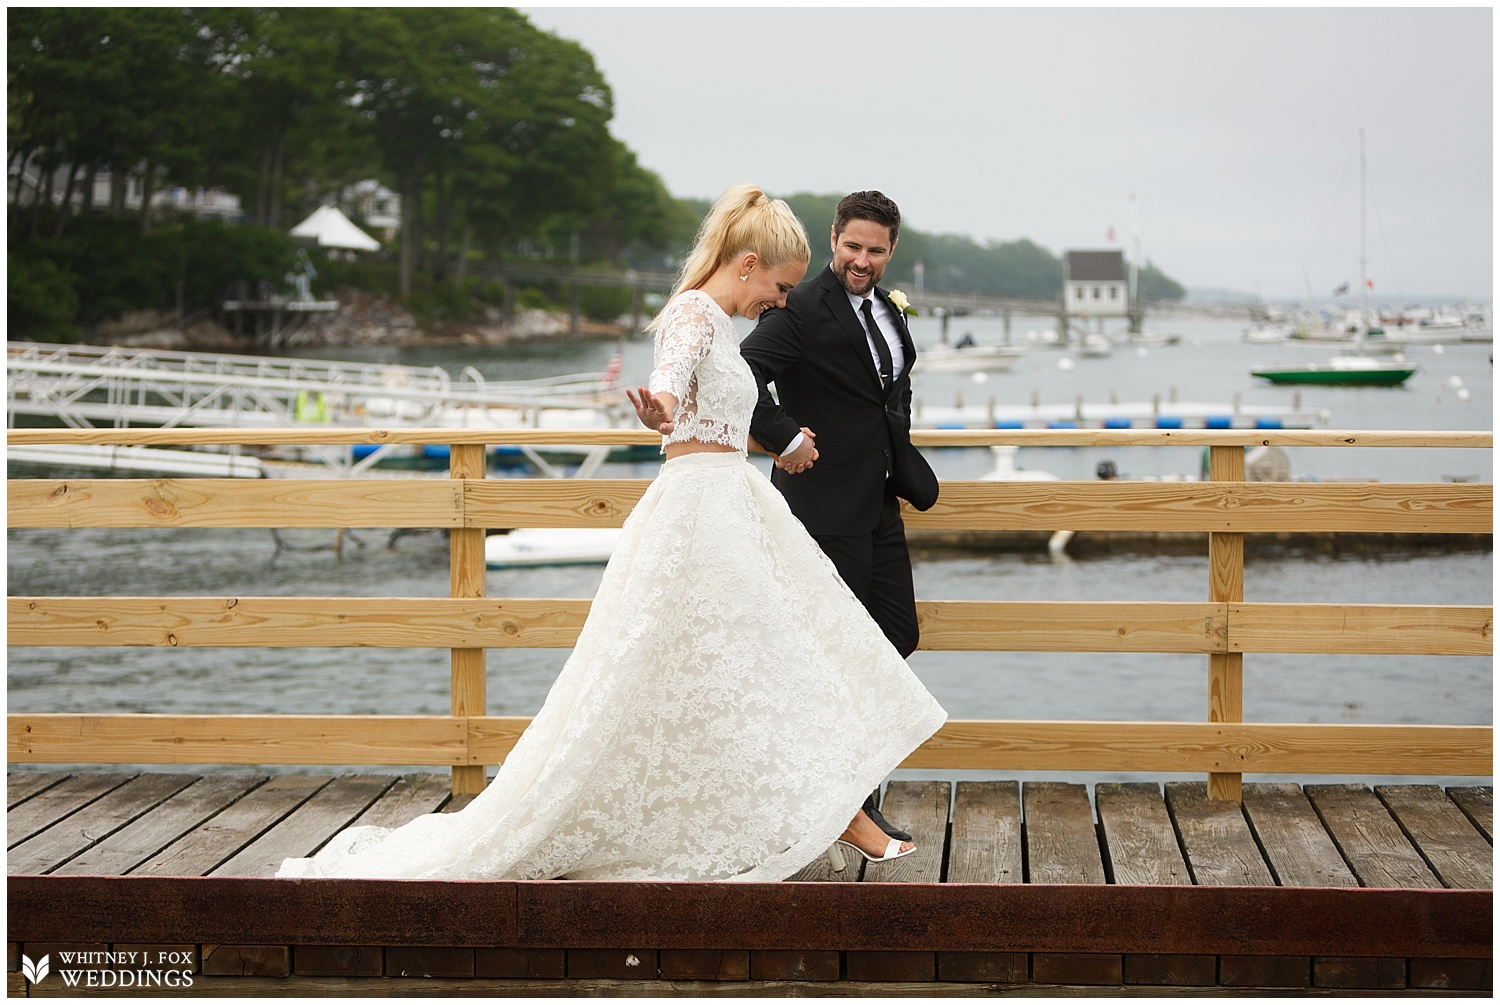 formal_seaside_summer_wedding_dockside_grill_falmouth_maine_photographer_whitney_j_fox_weddings_50.JPG